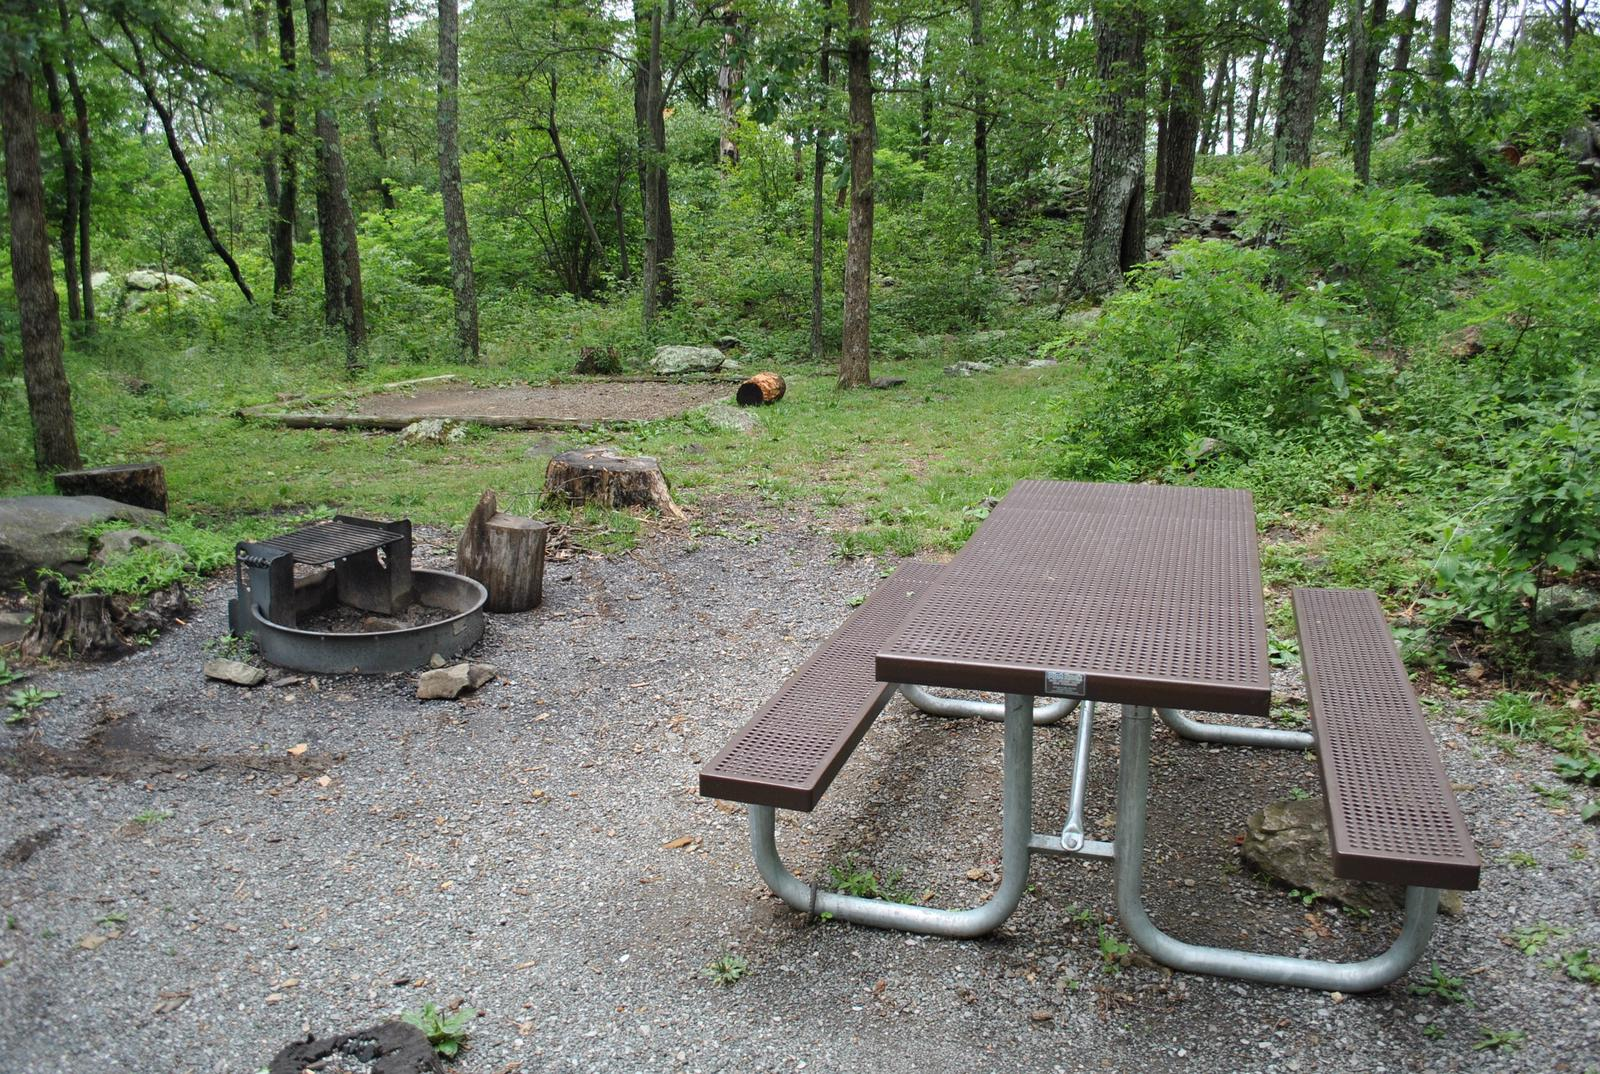 Mathews Arm Campground – Site A068